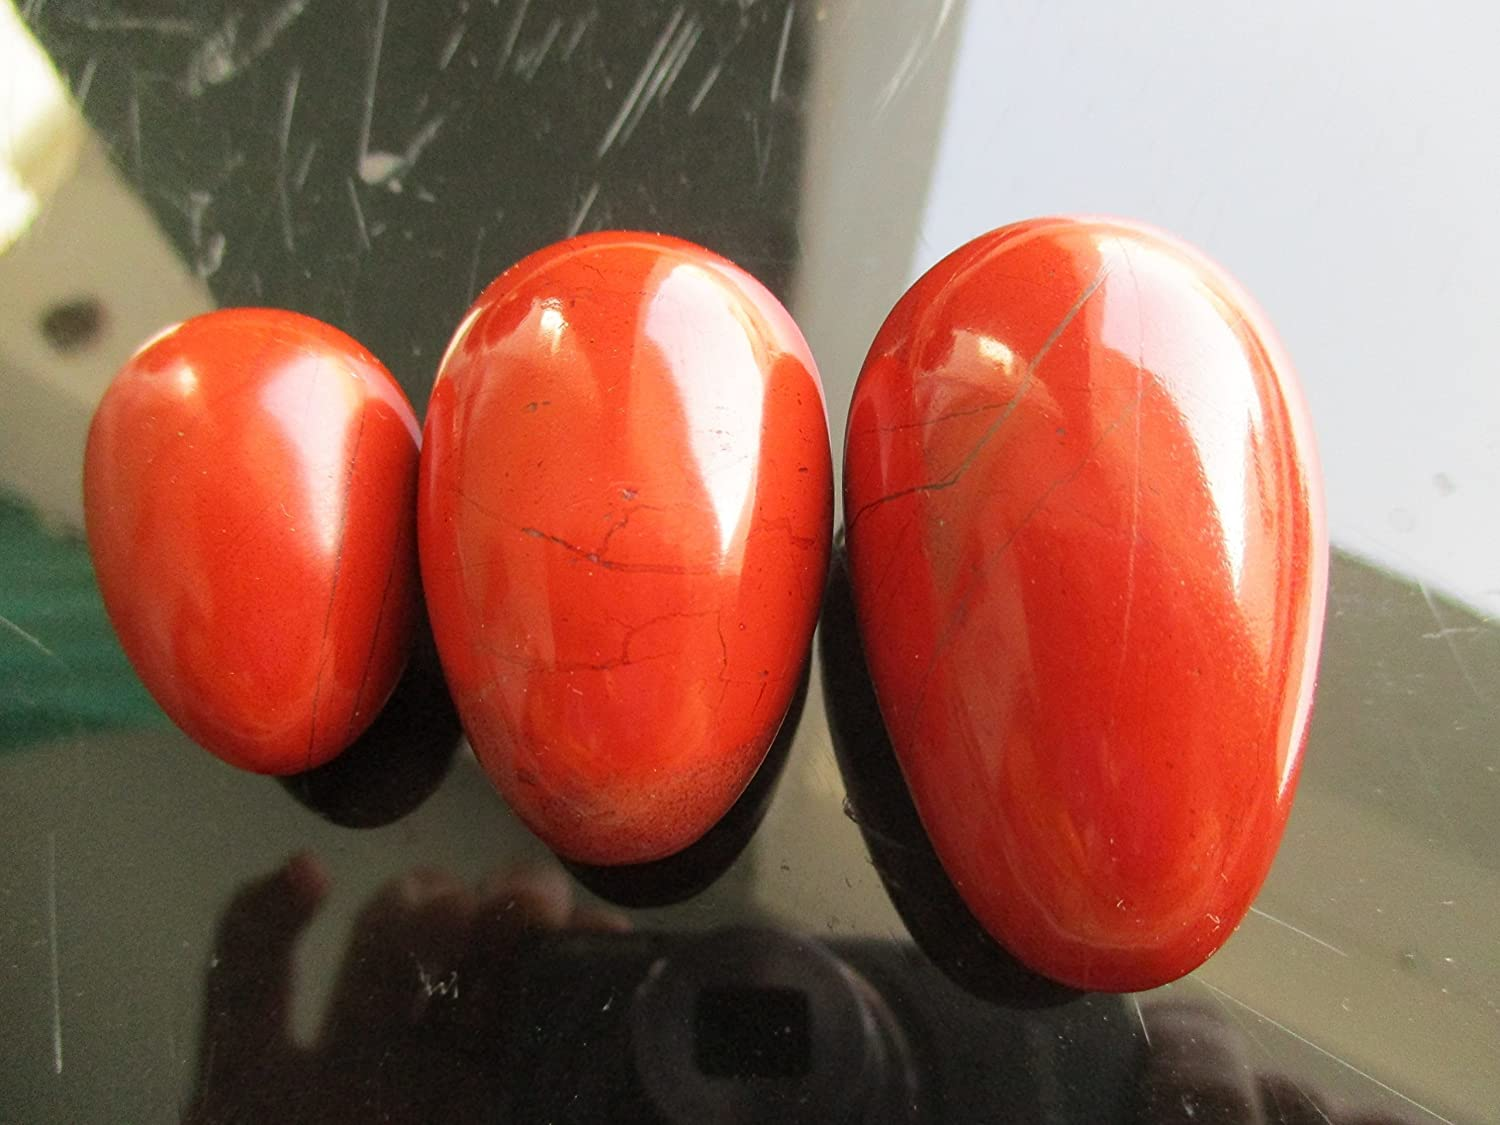 Handmade Red Jasper(L/M/S) Yoni Egg Massage Egg Healing Crystal Reiki Infused for Tantra / Exercise / Decorative Egg With Free Gift Bag.